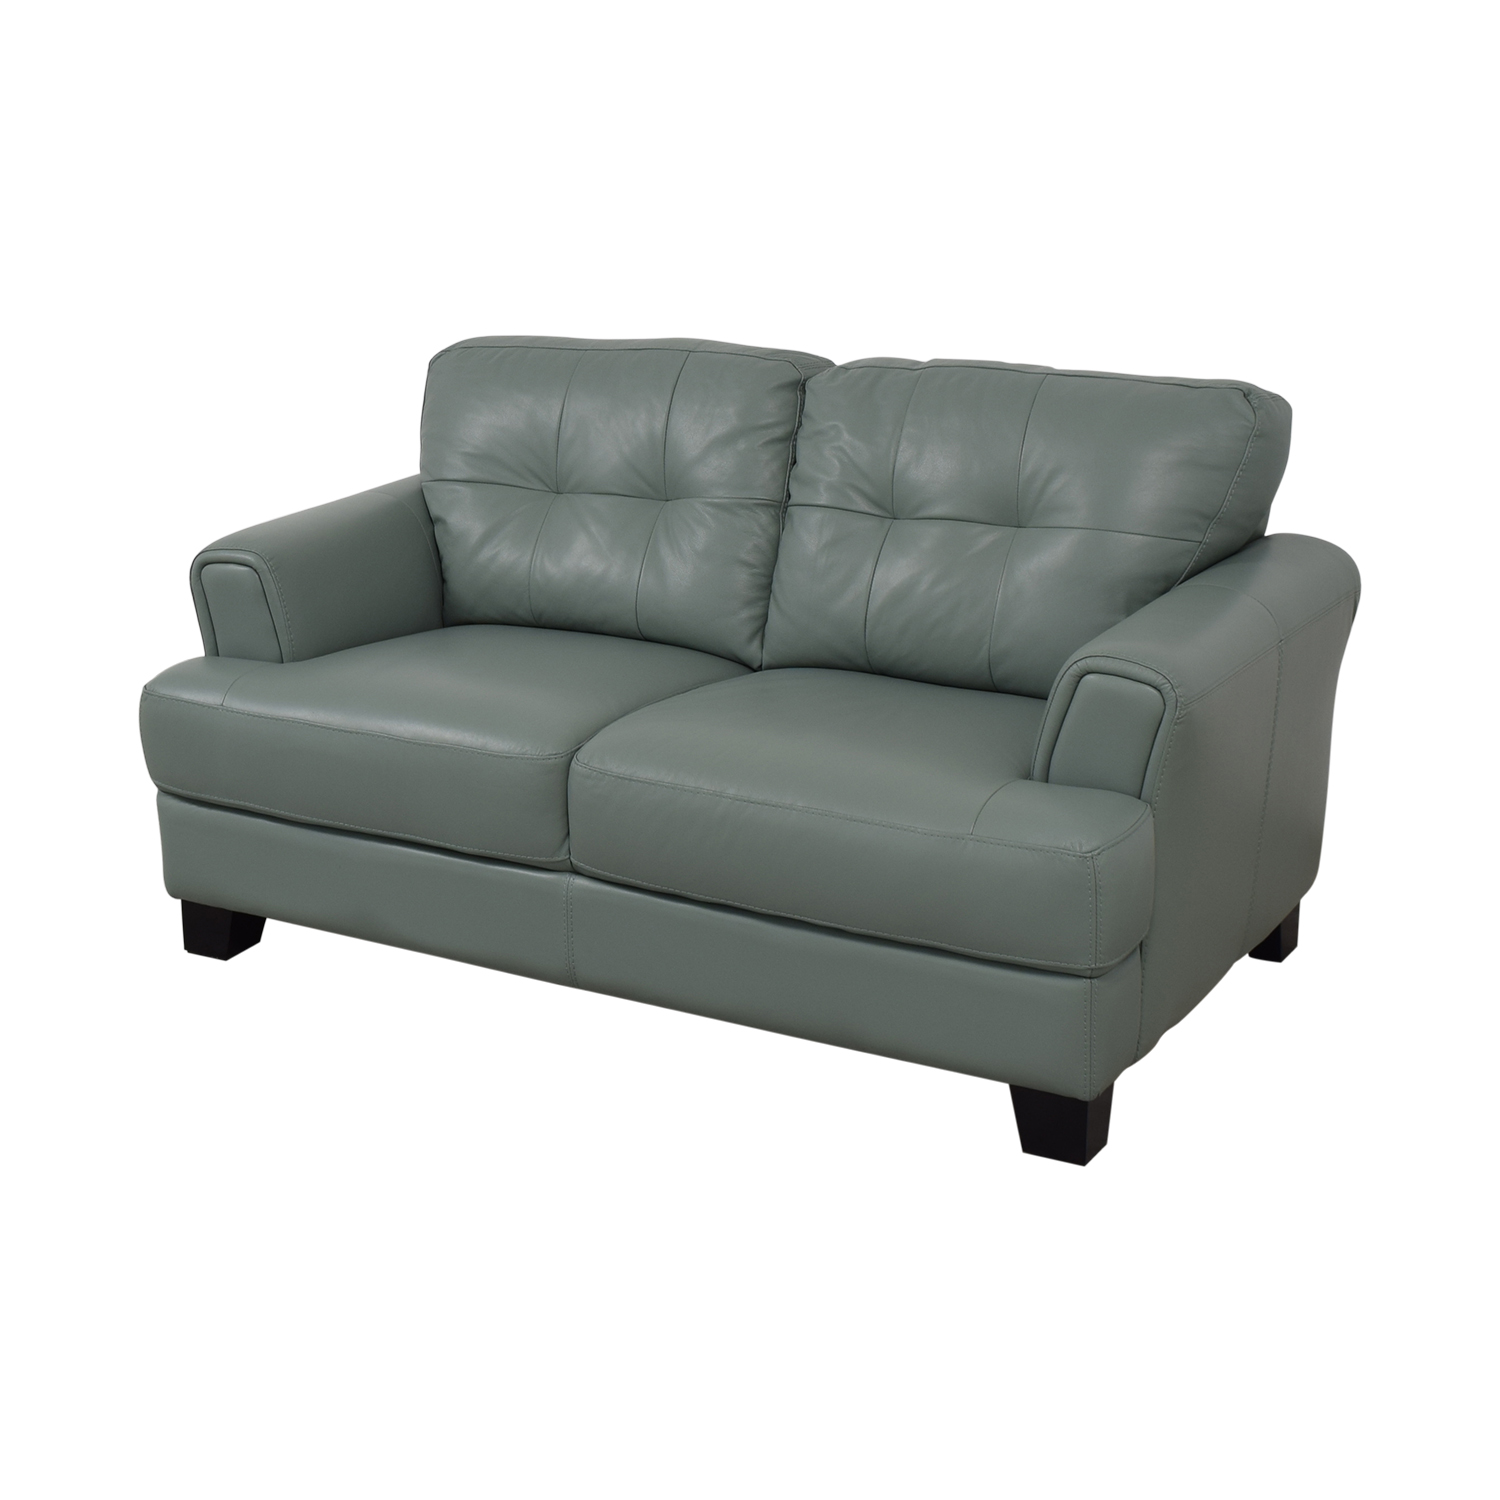 Chateau D'Ax Chateau D'Ax Seafoam Green Tufted Loveseat